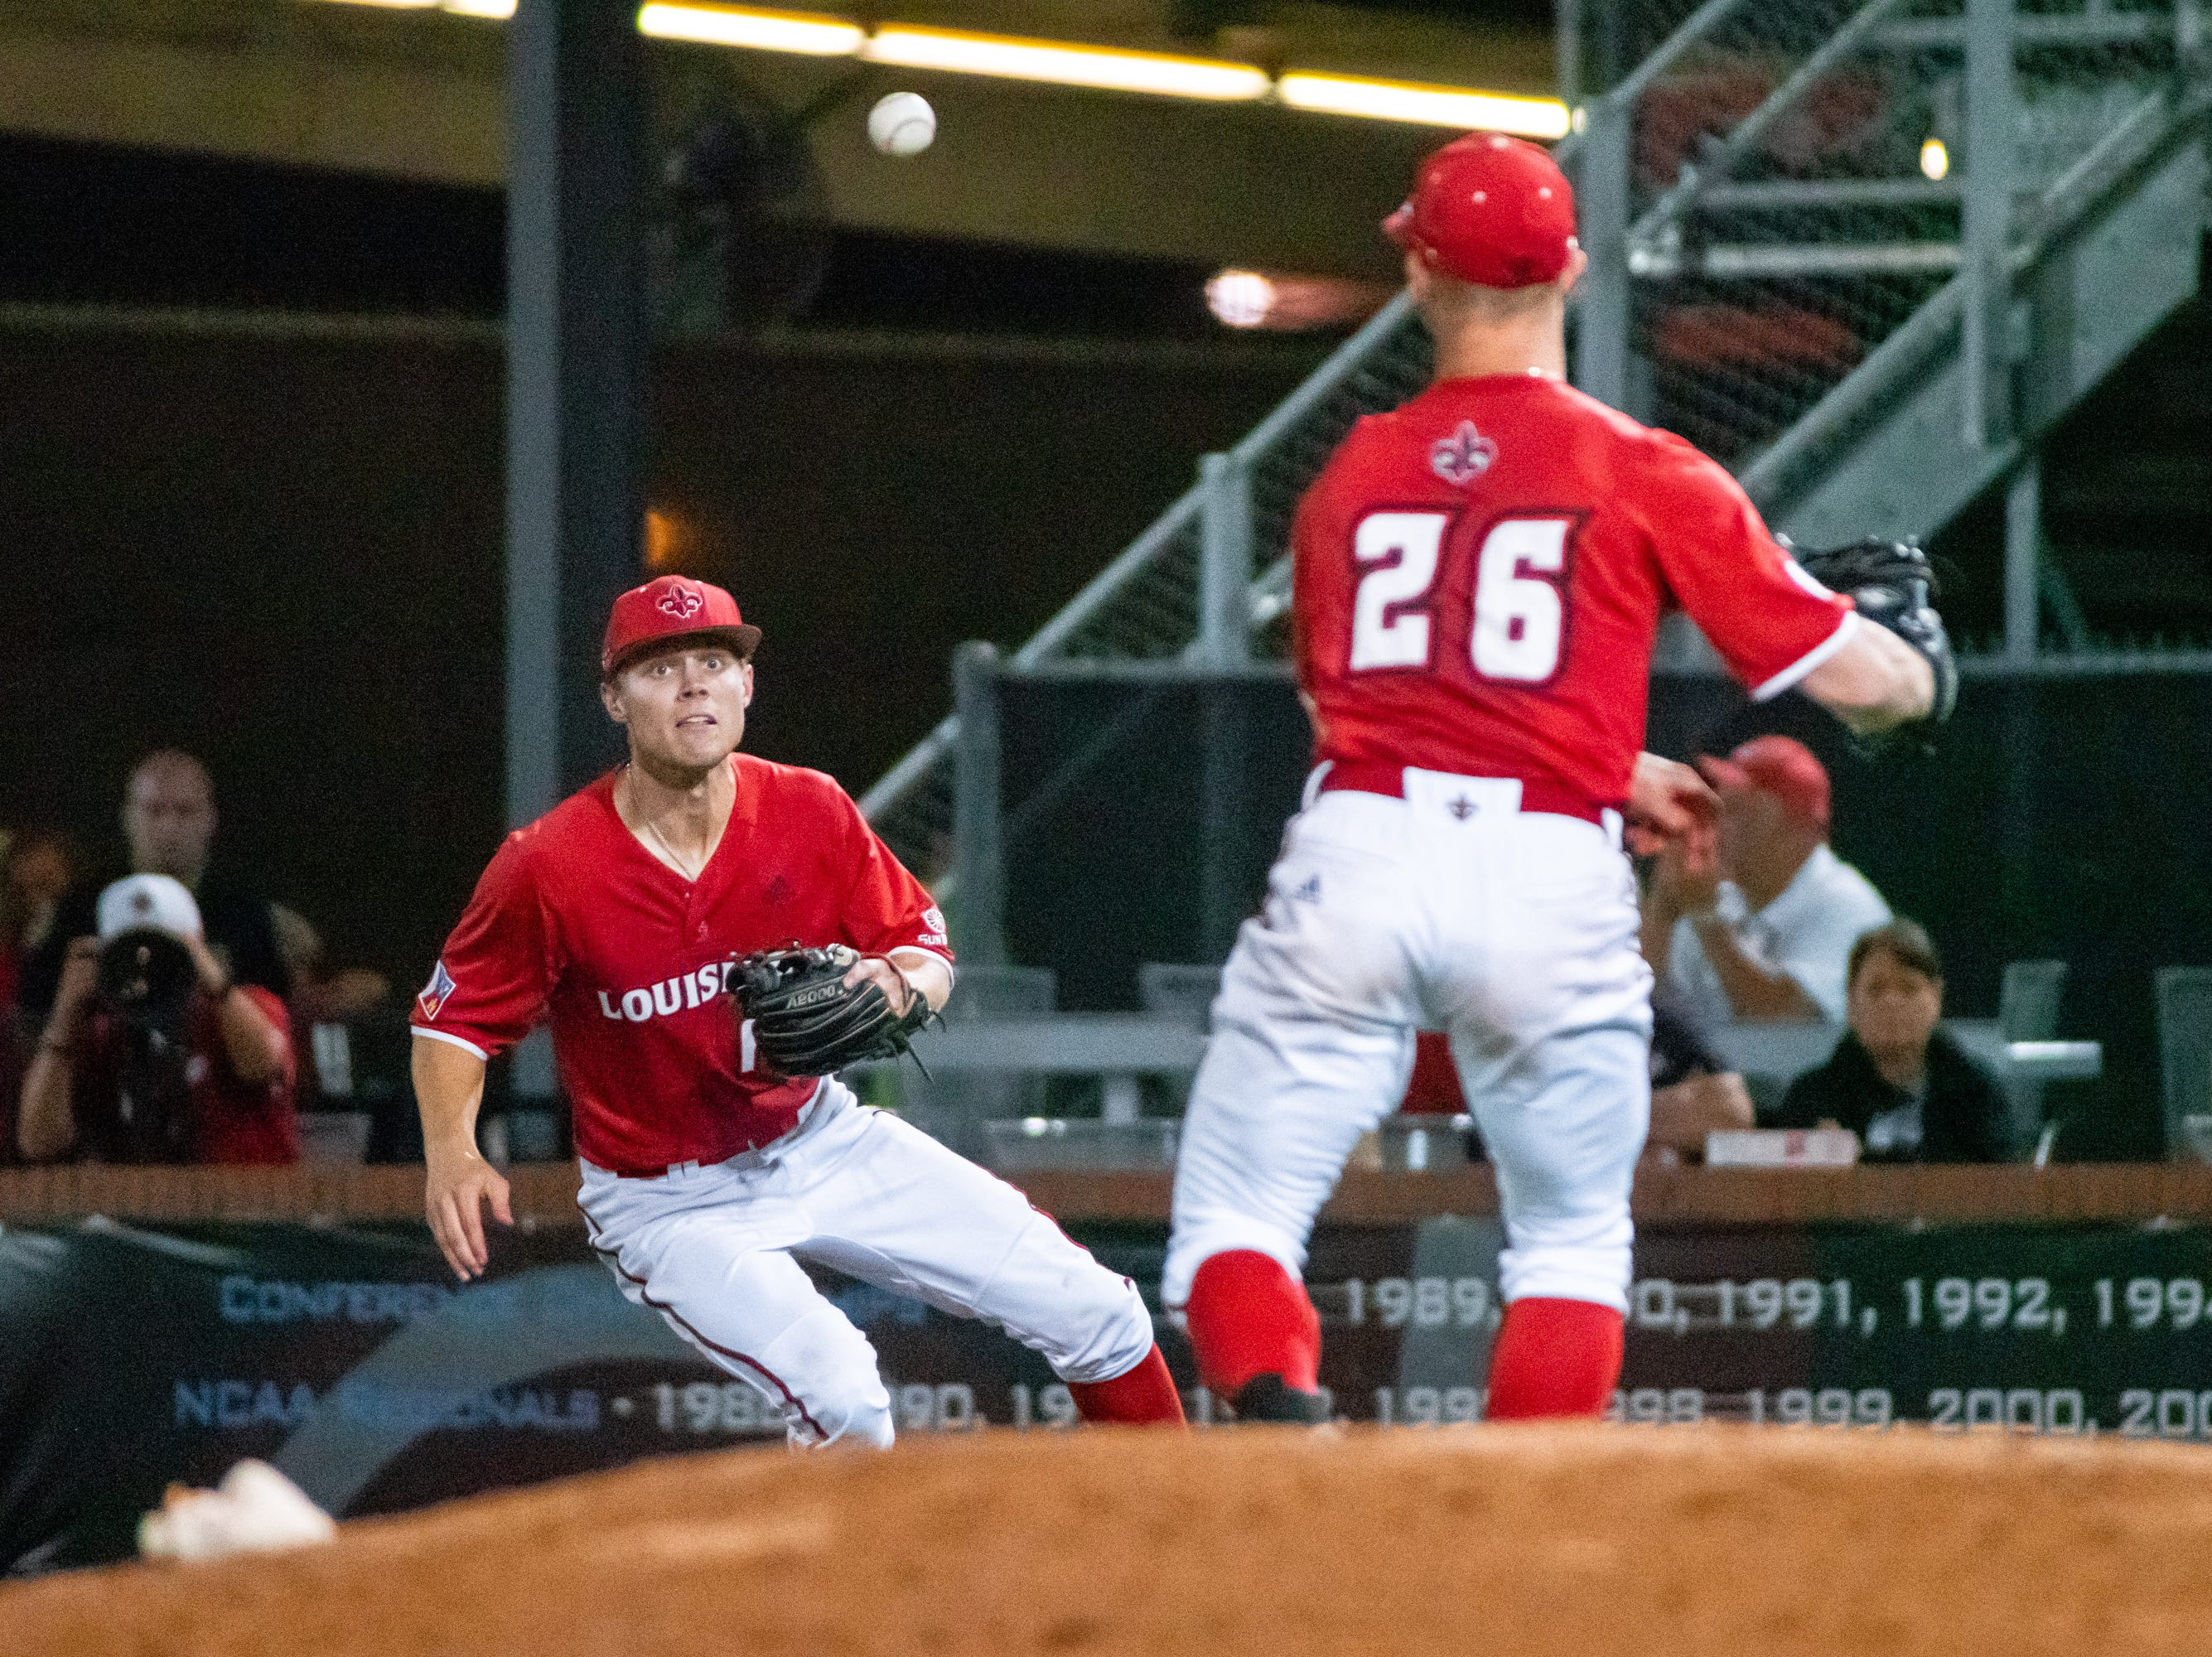 """UL's Hunter Kasuls prepares to catch a throw to first base to get the runner out as the Ragin' Cajuns take on the South Alabama Jaguars at M.L. """"Tigue"""" Moore Field on Friday, April 4, 2019."""